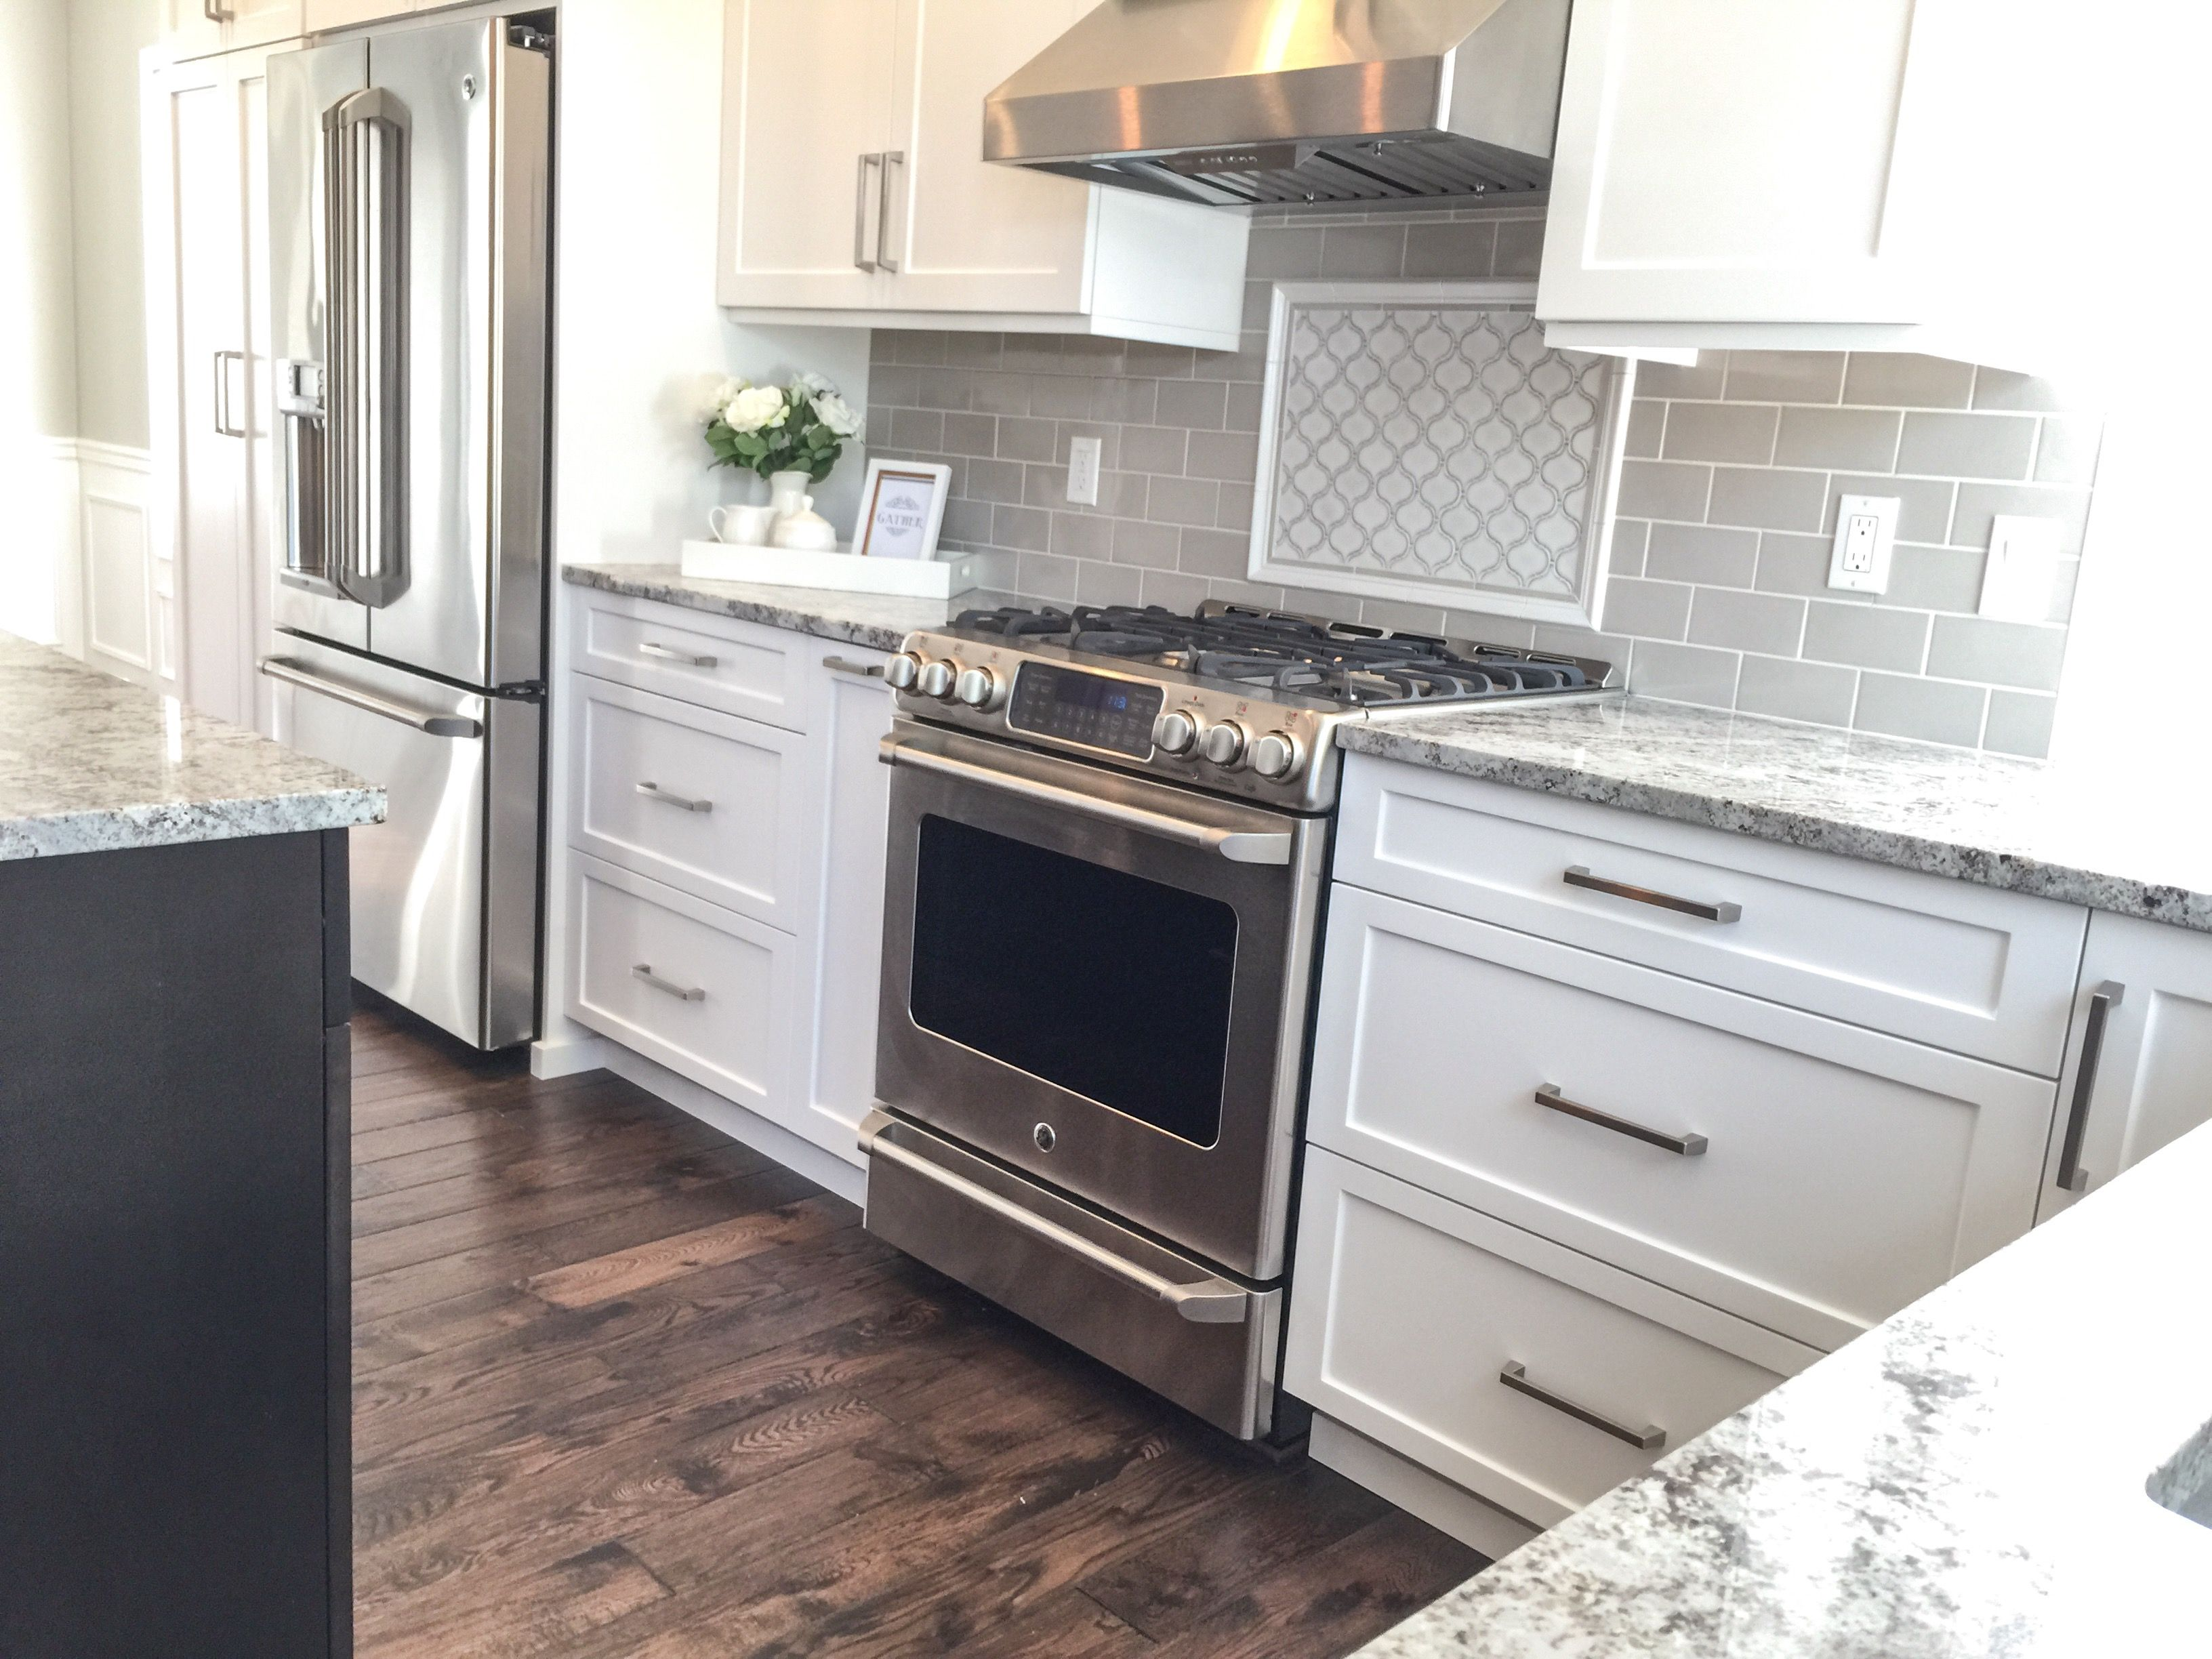 Kitchen Remodel White Shaker Cabinets With Dark Stained Island Two Toned Transitional Kitchen With Tile Kitchen Remodel Home Decor Kitchen Beautiful Kitchens